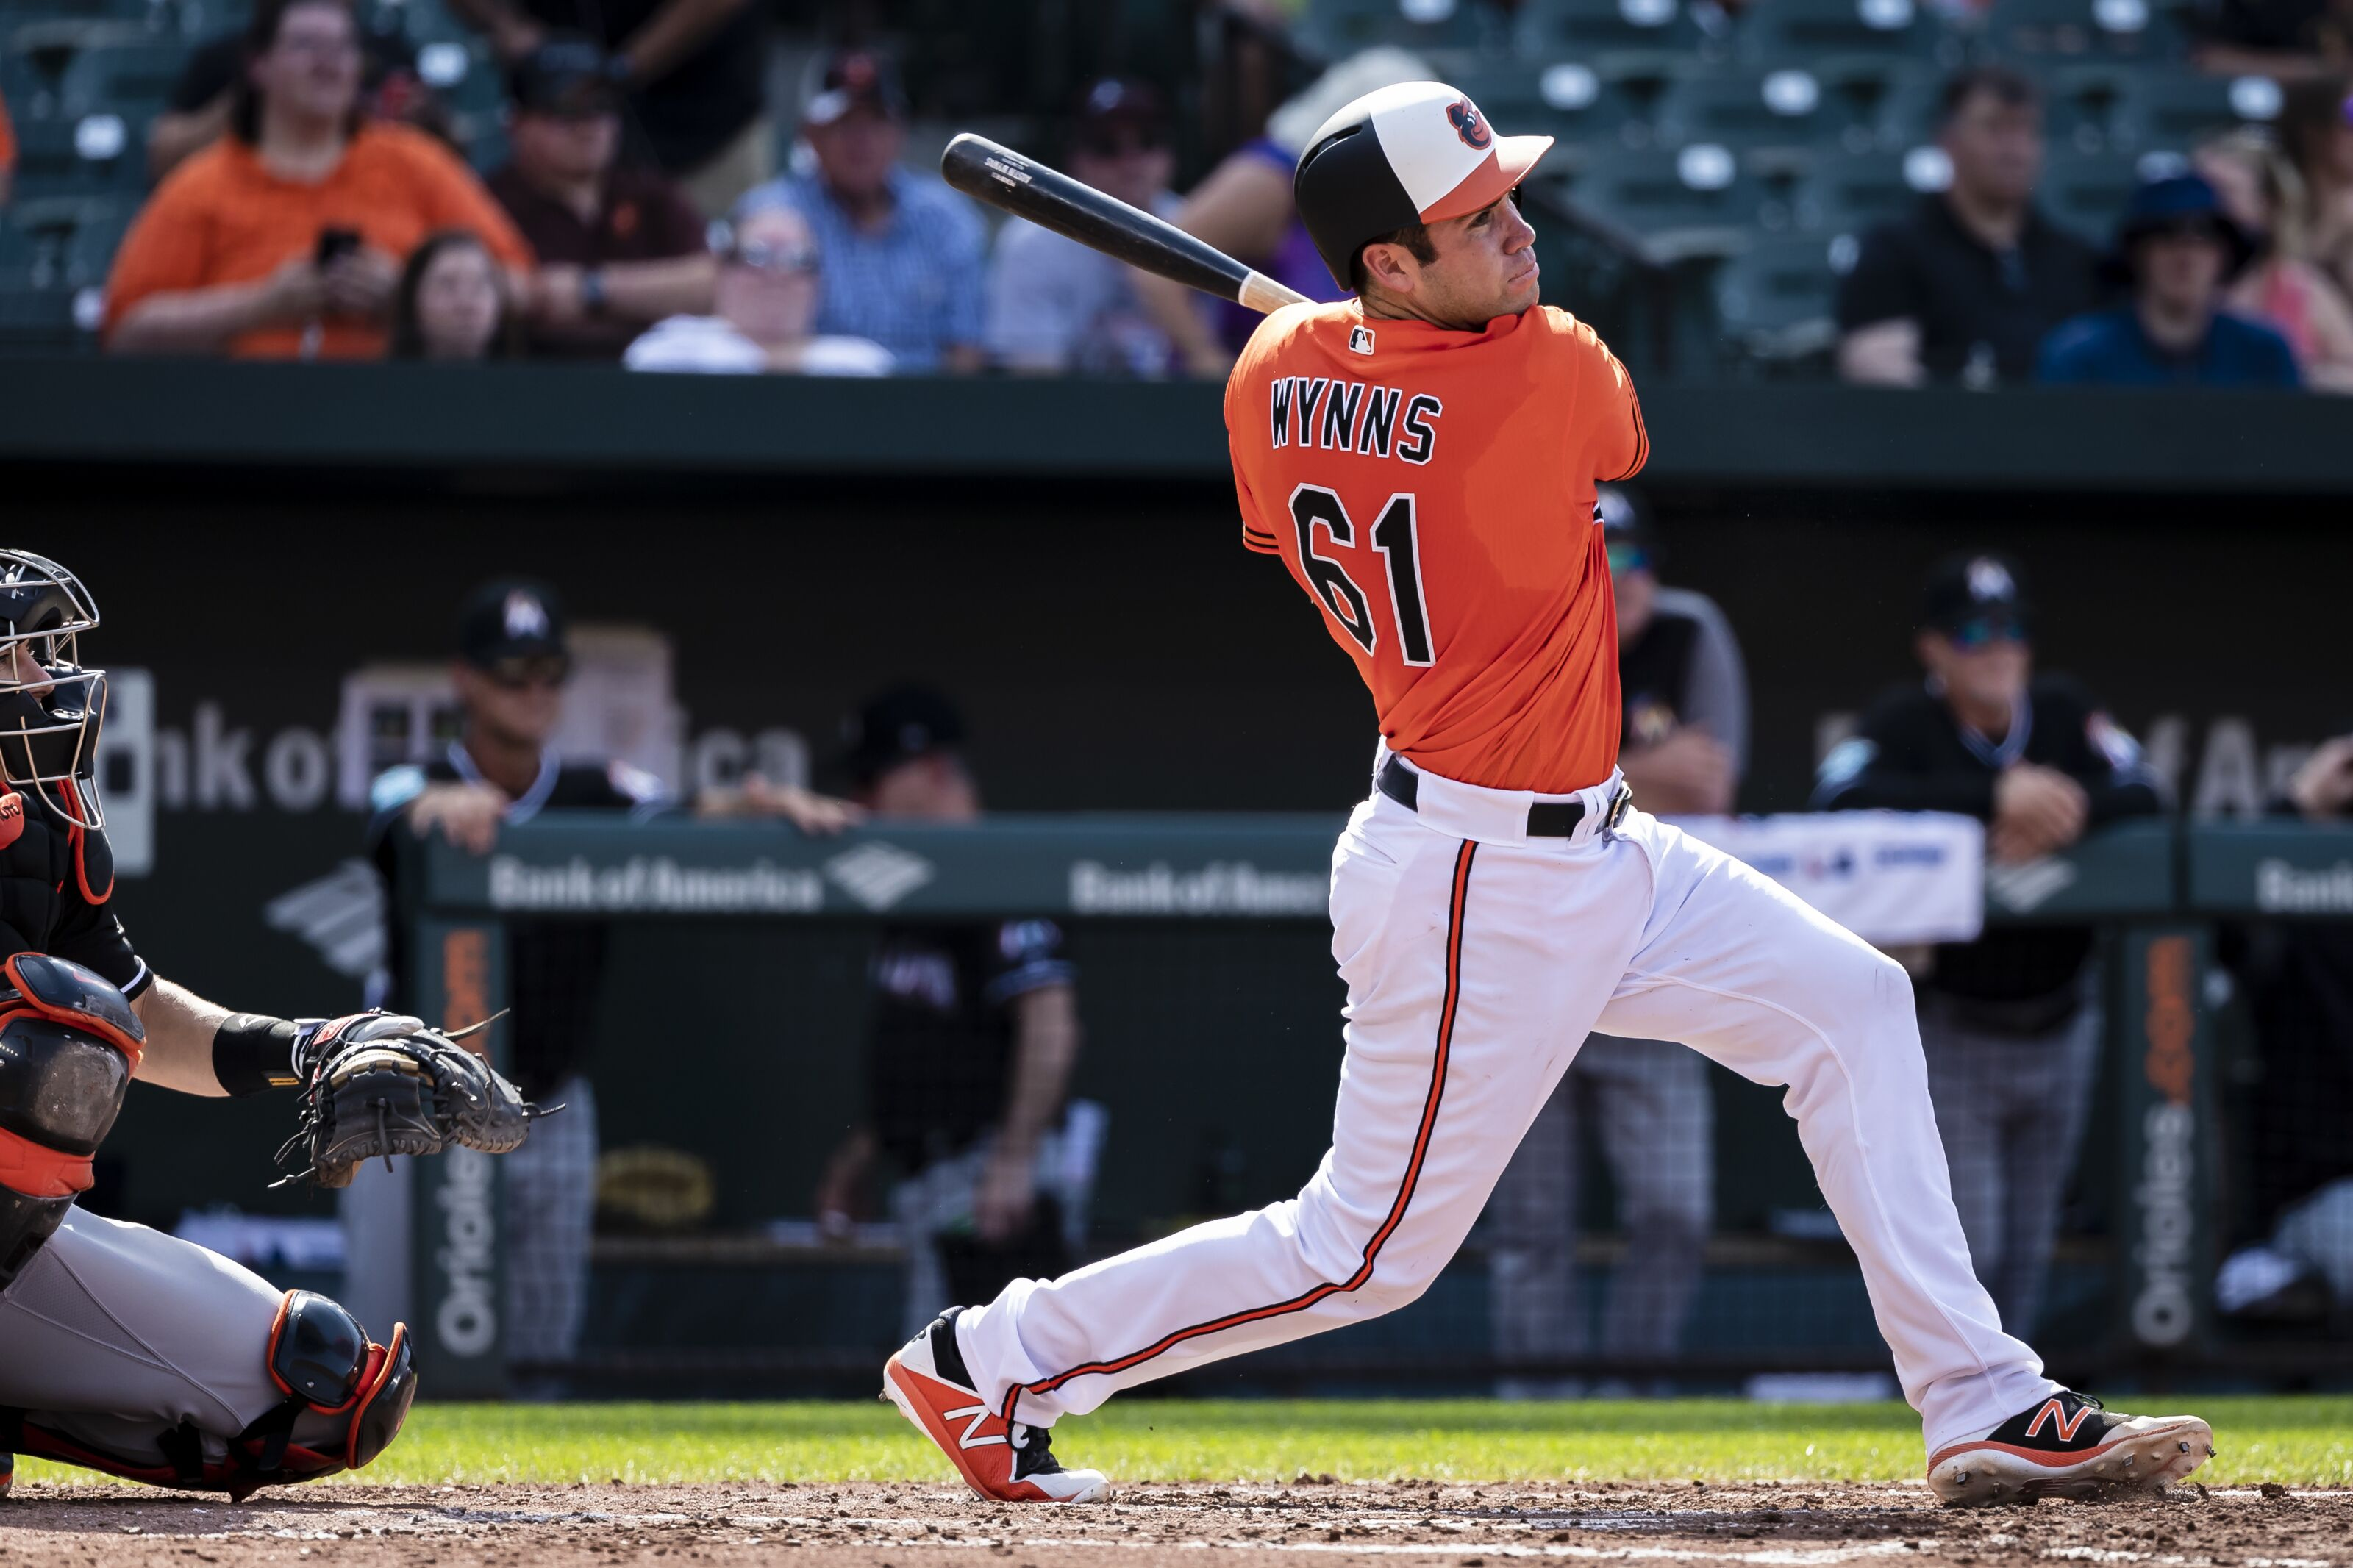 Baltimore Orioles: Austin Wynns can be an everyday catcher